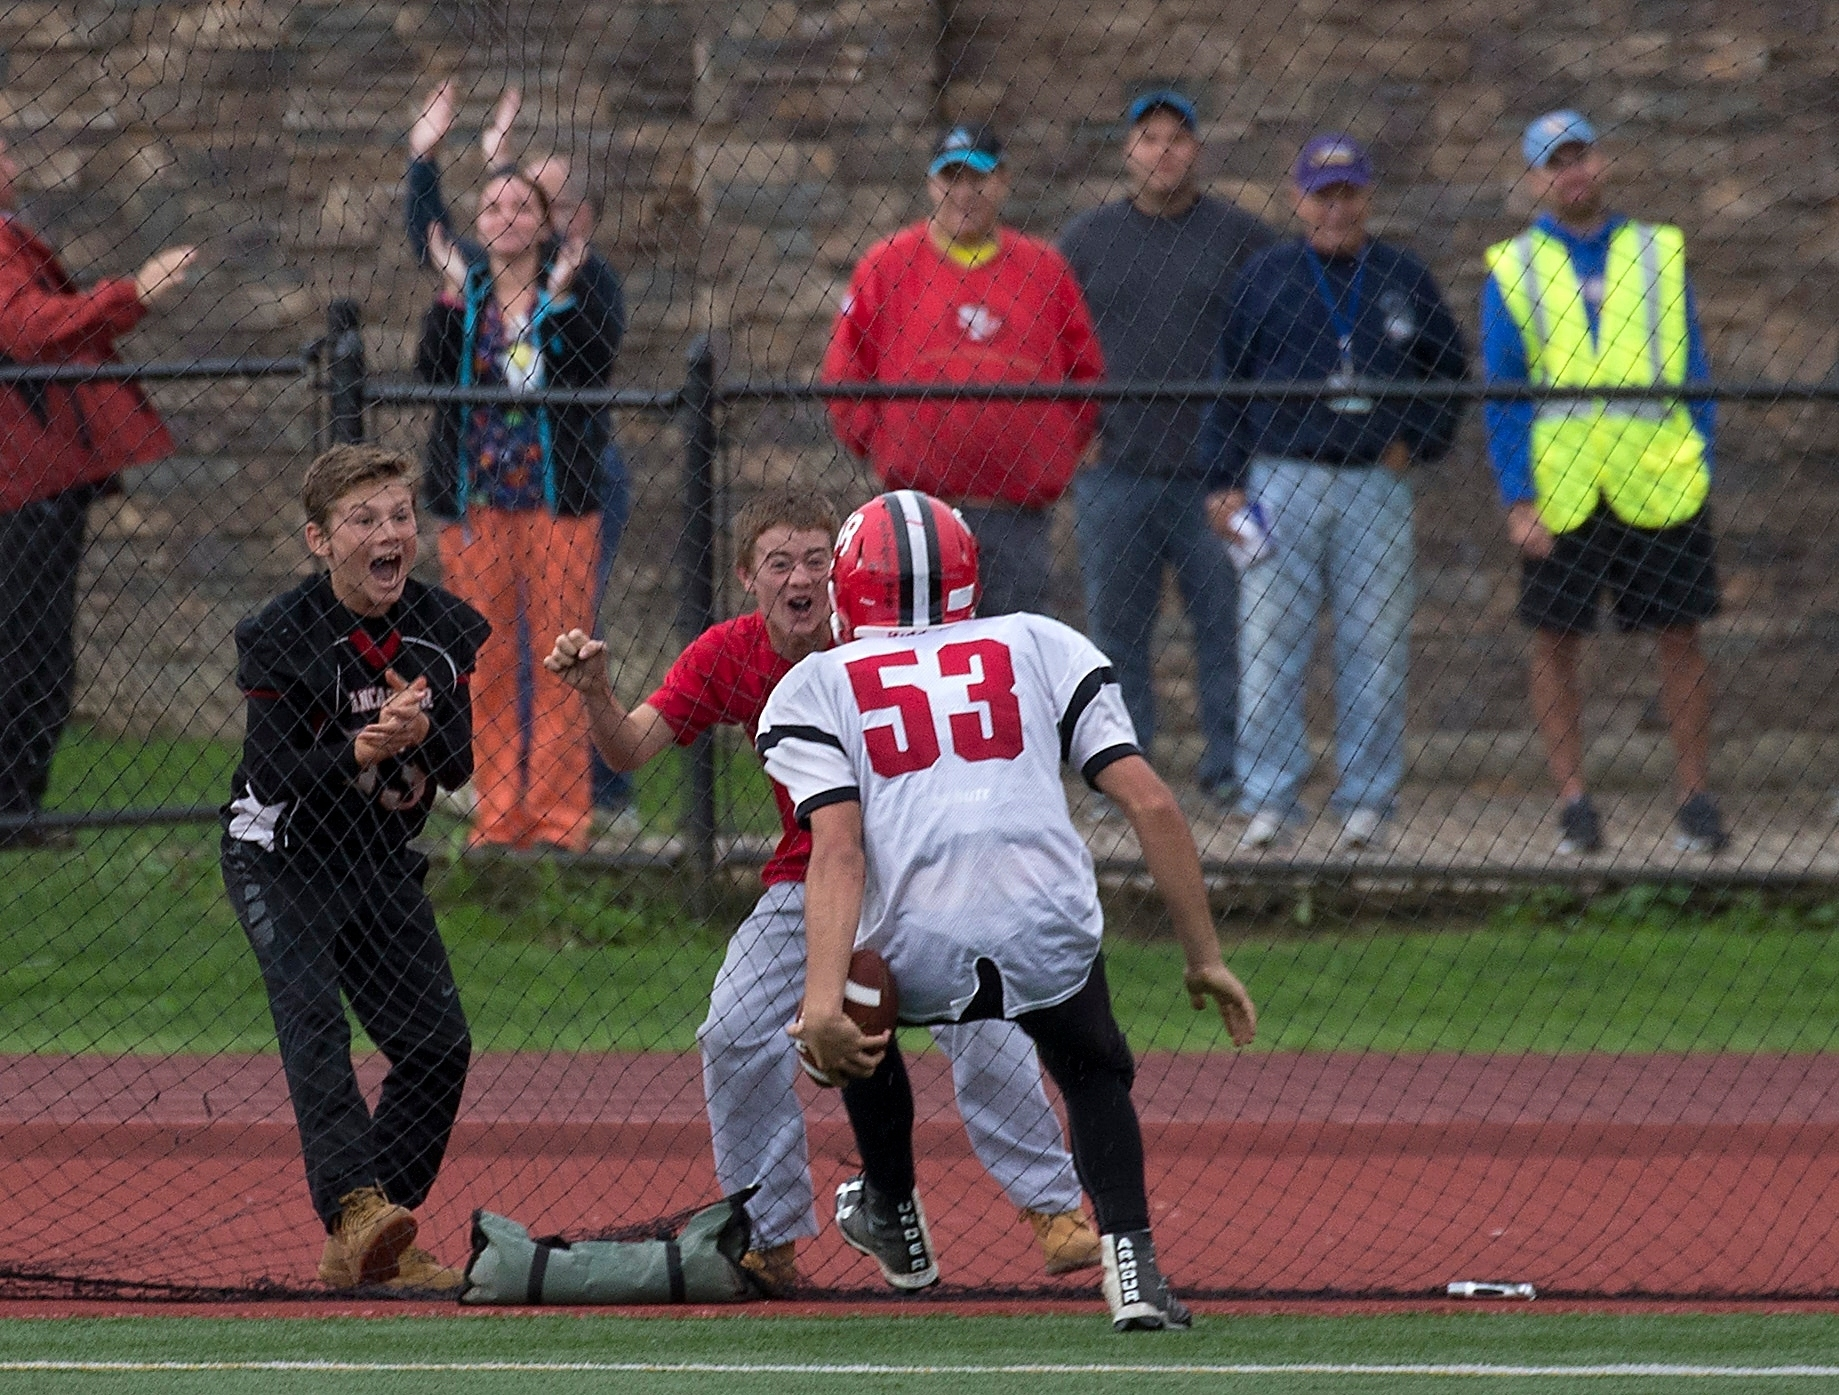 The fan reaction says it all as Lancaster's Jacob Michalski celebrates his late TD return of a blocked punt good for a victory over Orchard Park.